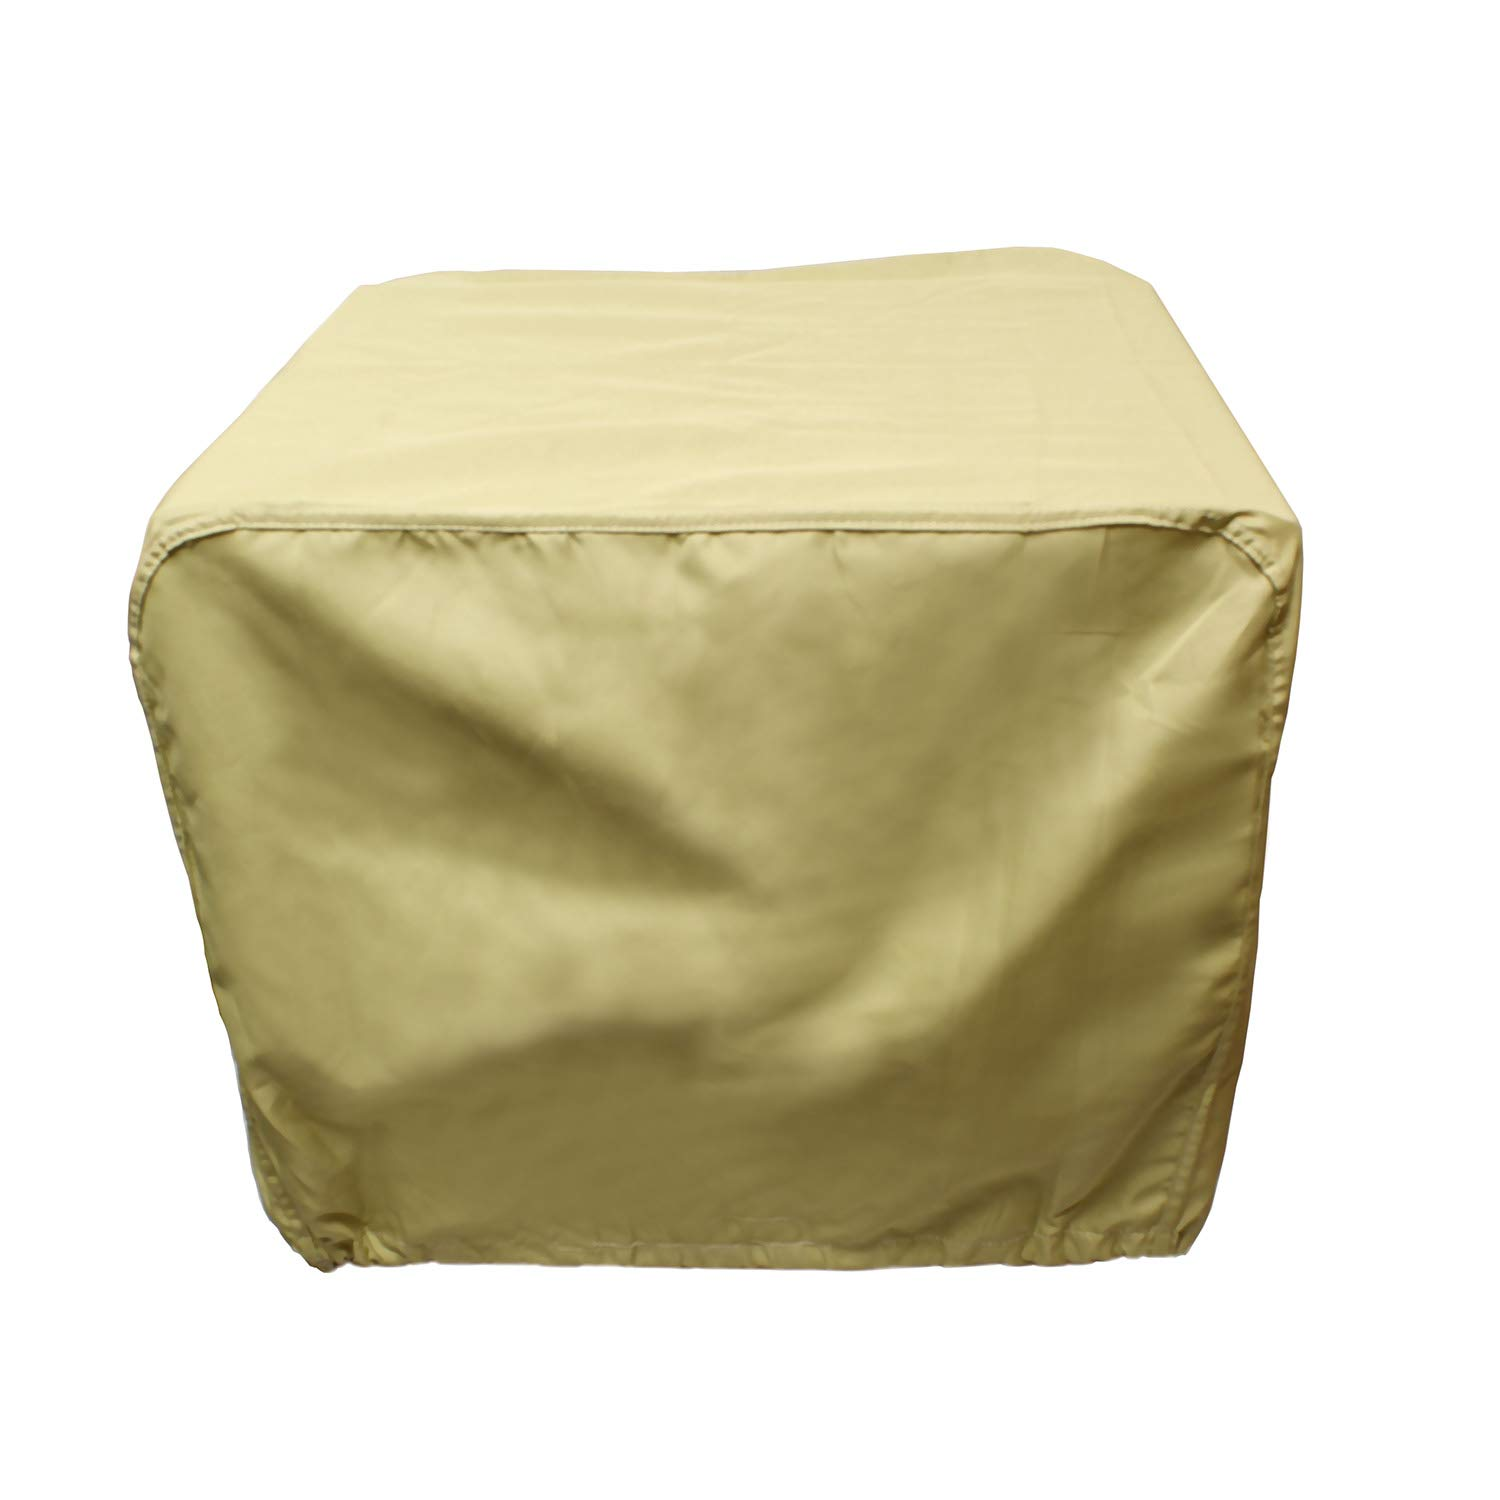 Dumble Universal Generator Cover - Medium Generator Covers Heavy Duty Waterproof Generator Cover, 24 x 22 x 20 Inch by Dumble